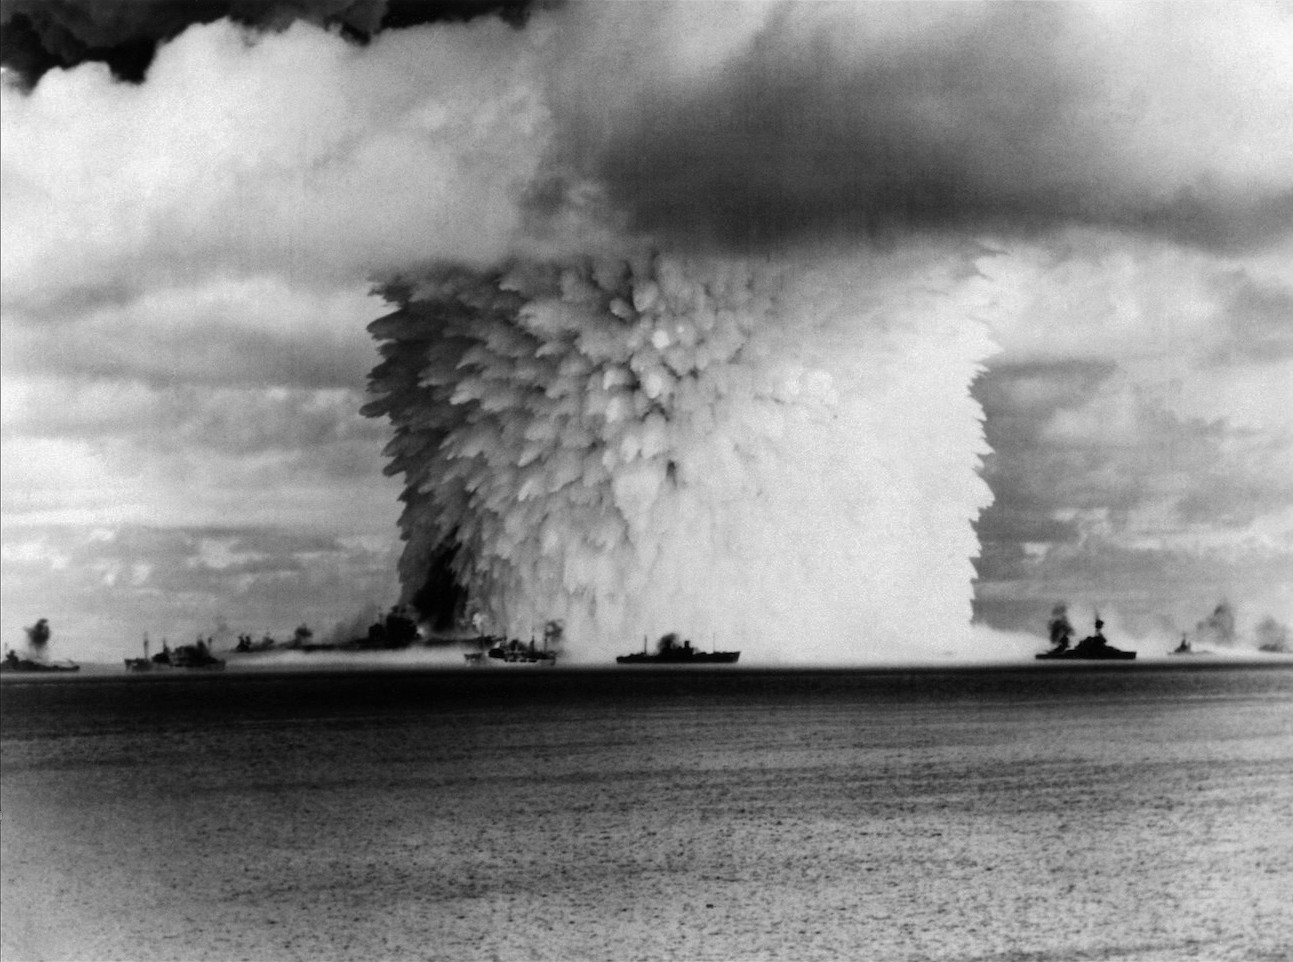 USS_Saratoga_(CV-3)_and_other_ships_are_hit_by_Crossroads_Baker_nuclear_blast,_25_July_1946.jpg